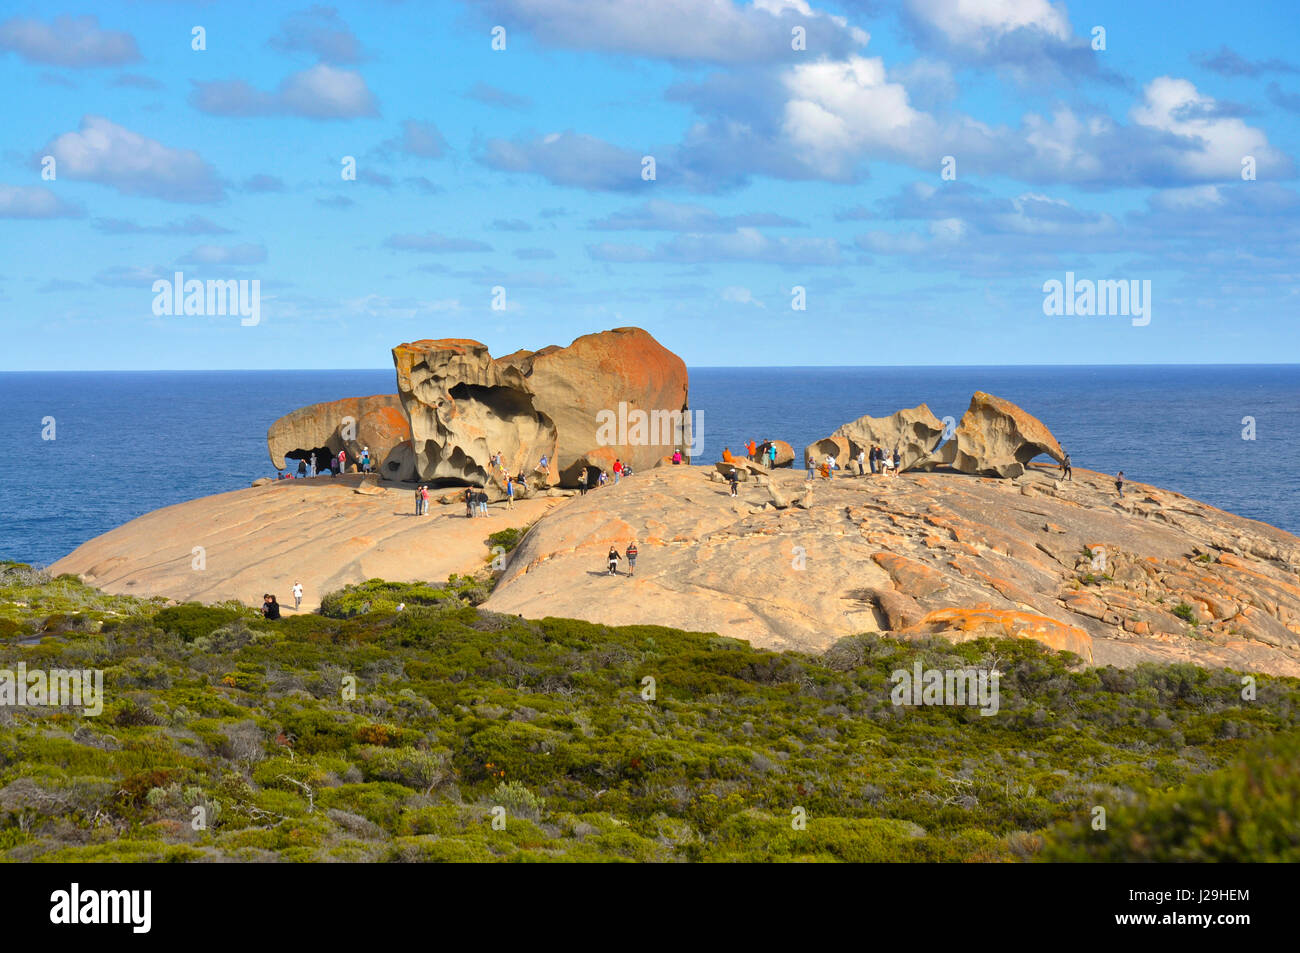 Crowd of tourists around 'Remarkable Rocks' area at Kangaroo Island - Stock Image